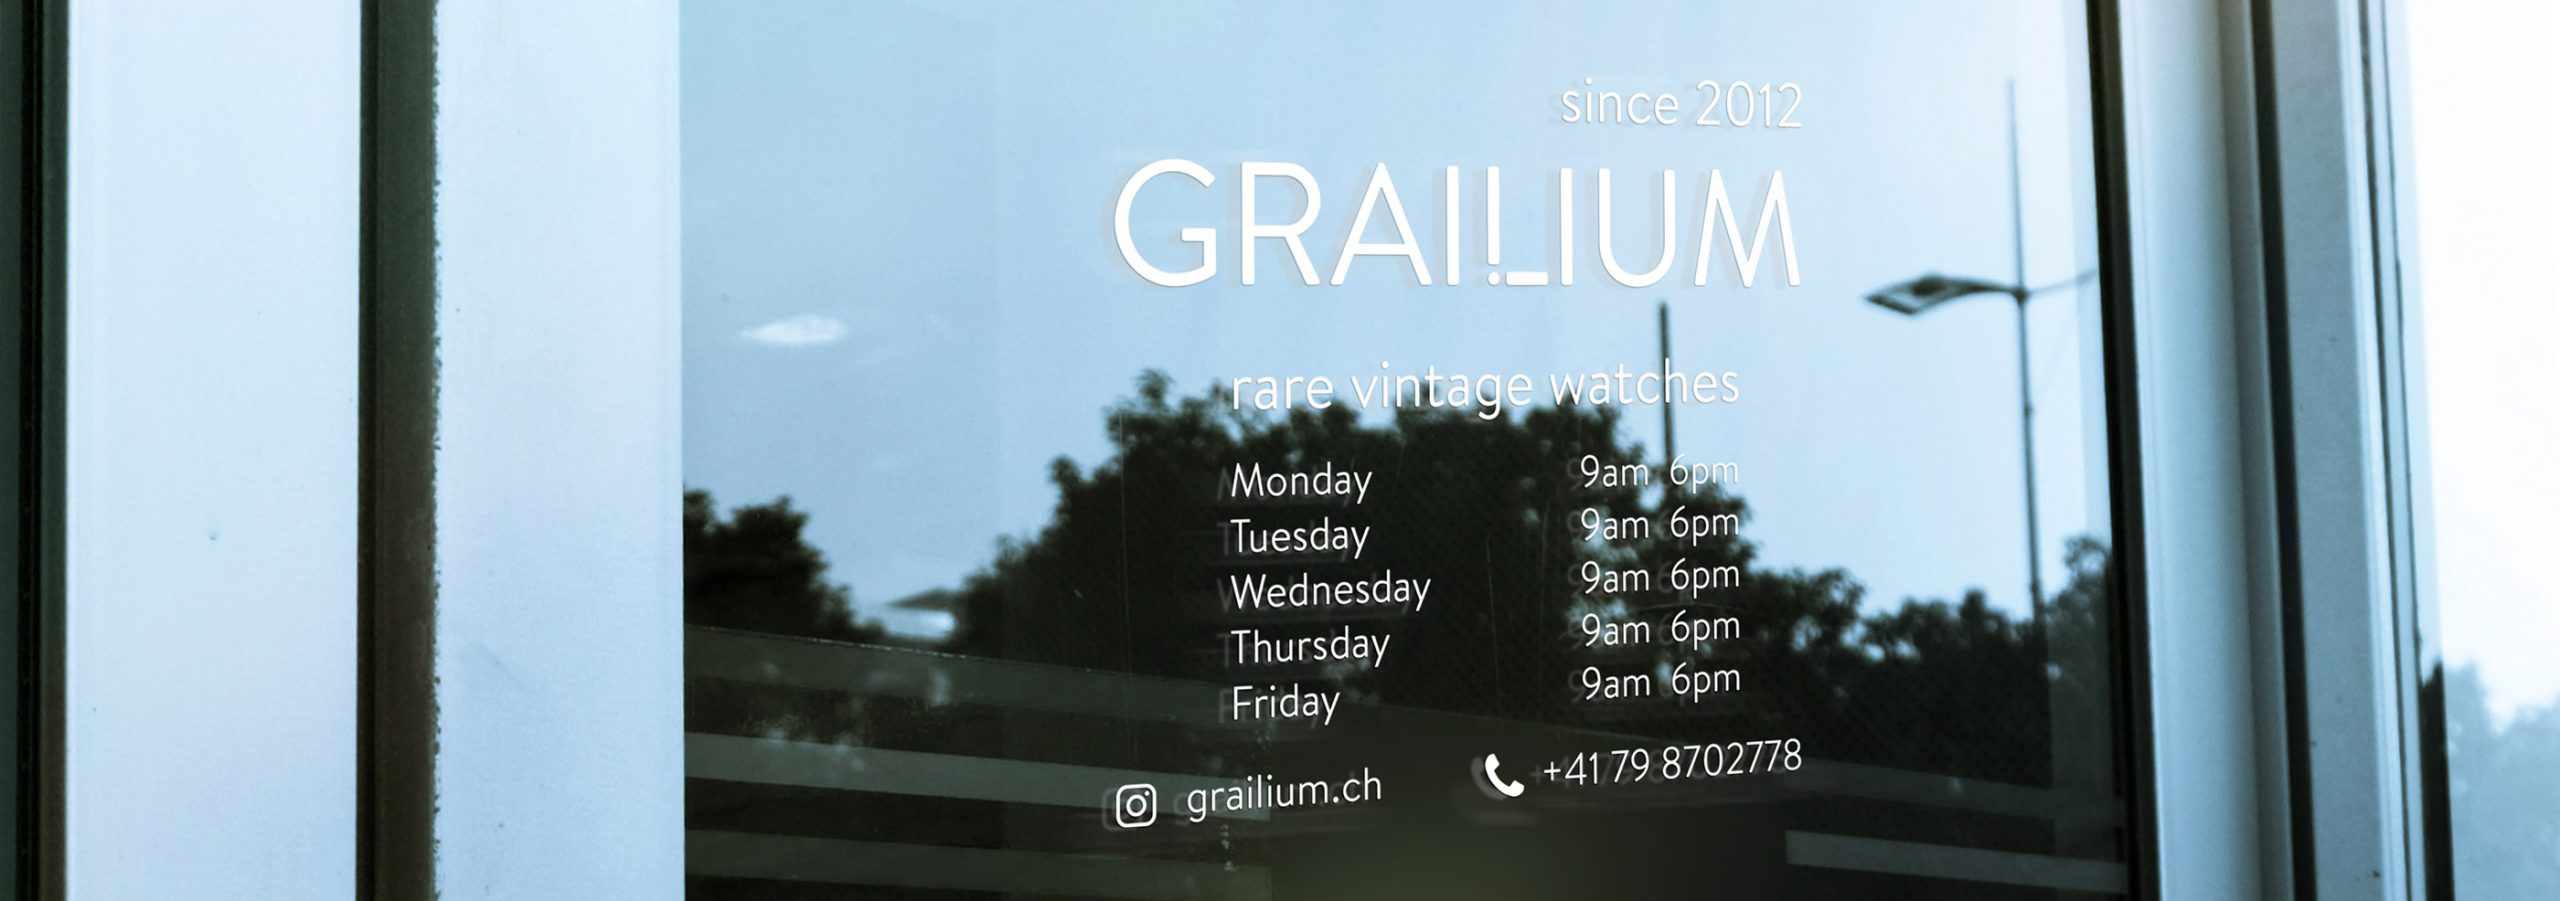 Grailium vintage watches shop, specialised in chronometers, rare timepiece finds and historically important watches.